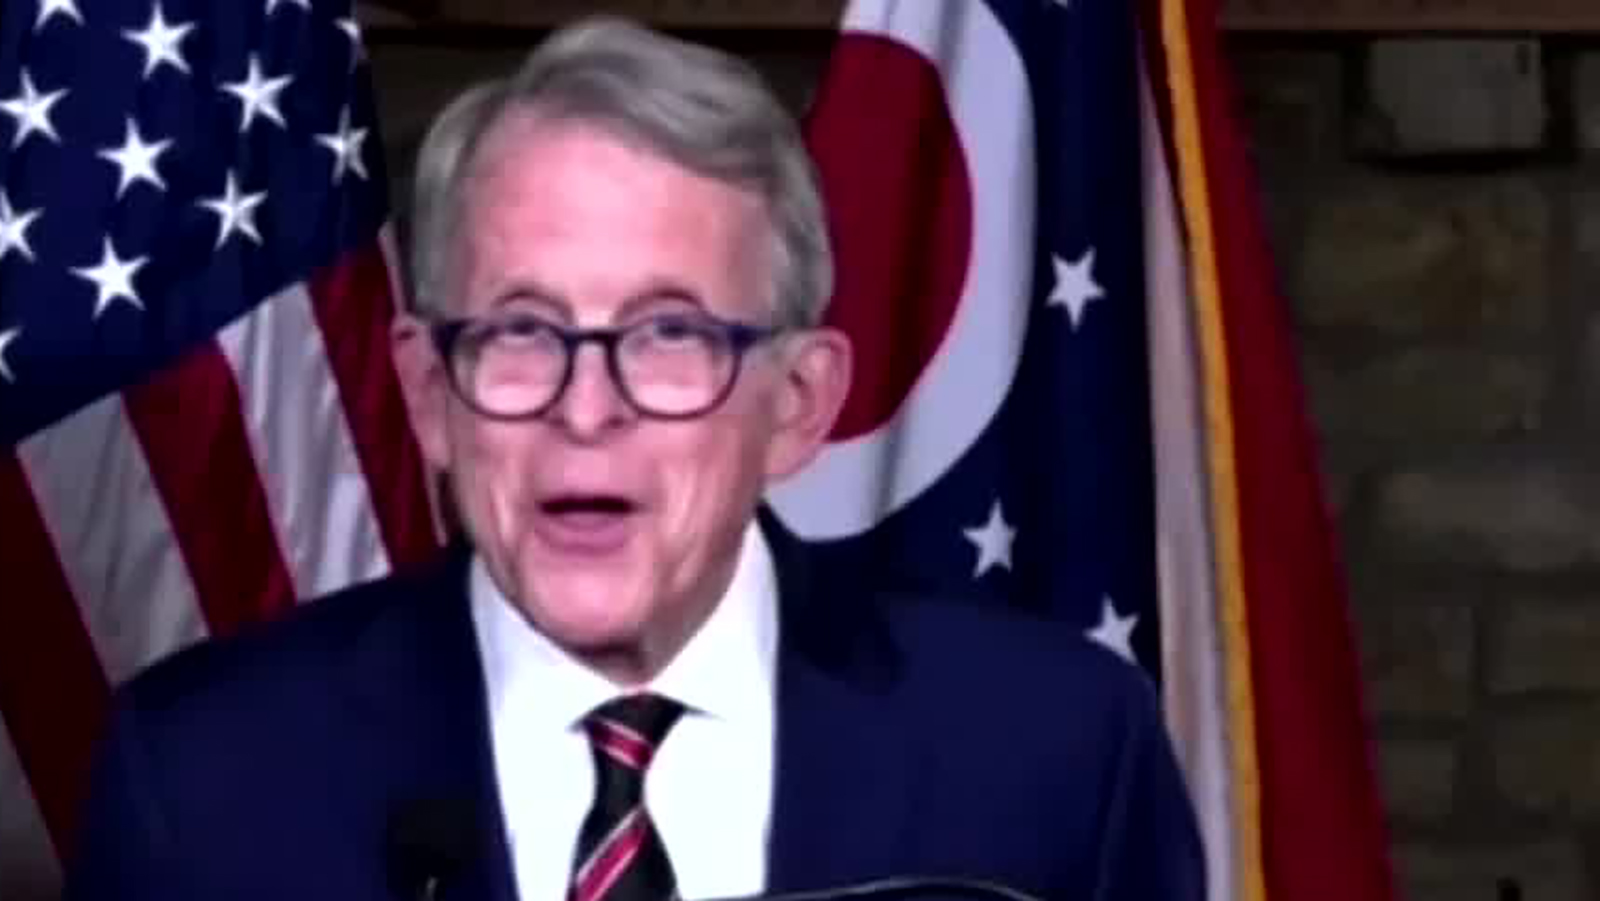 Ohio Gov. Mike DeWine speaks during a news conference on Monday, December 14.